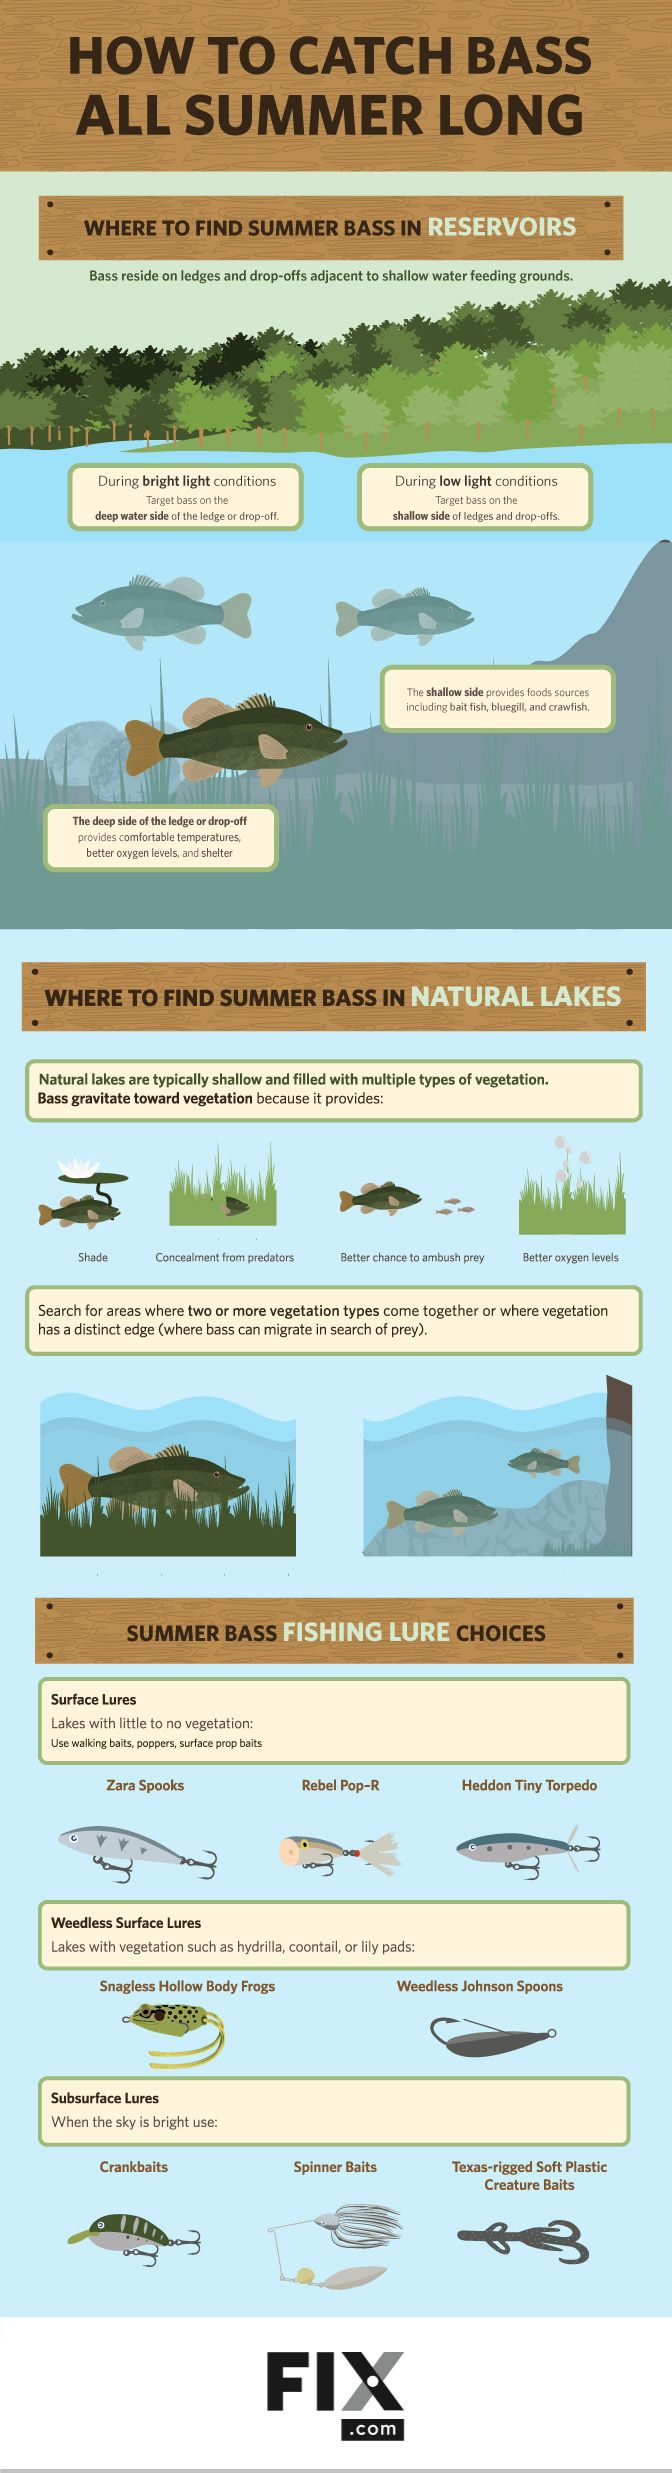 Bass are predictable and easy to target in the summer months. Comprehending their behavior and understanding how to target them are key to catching bass all season long.